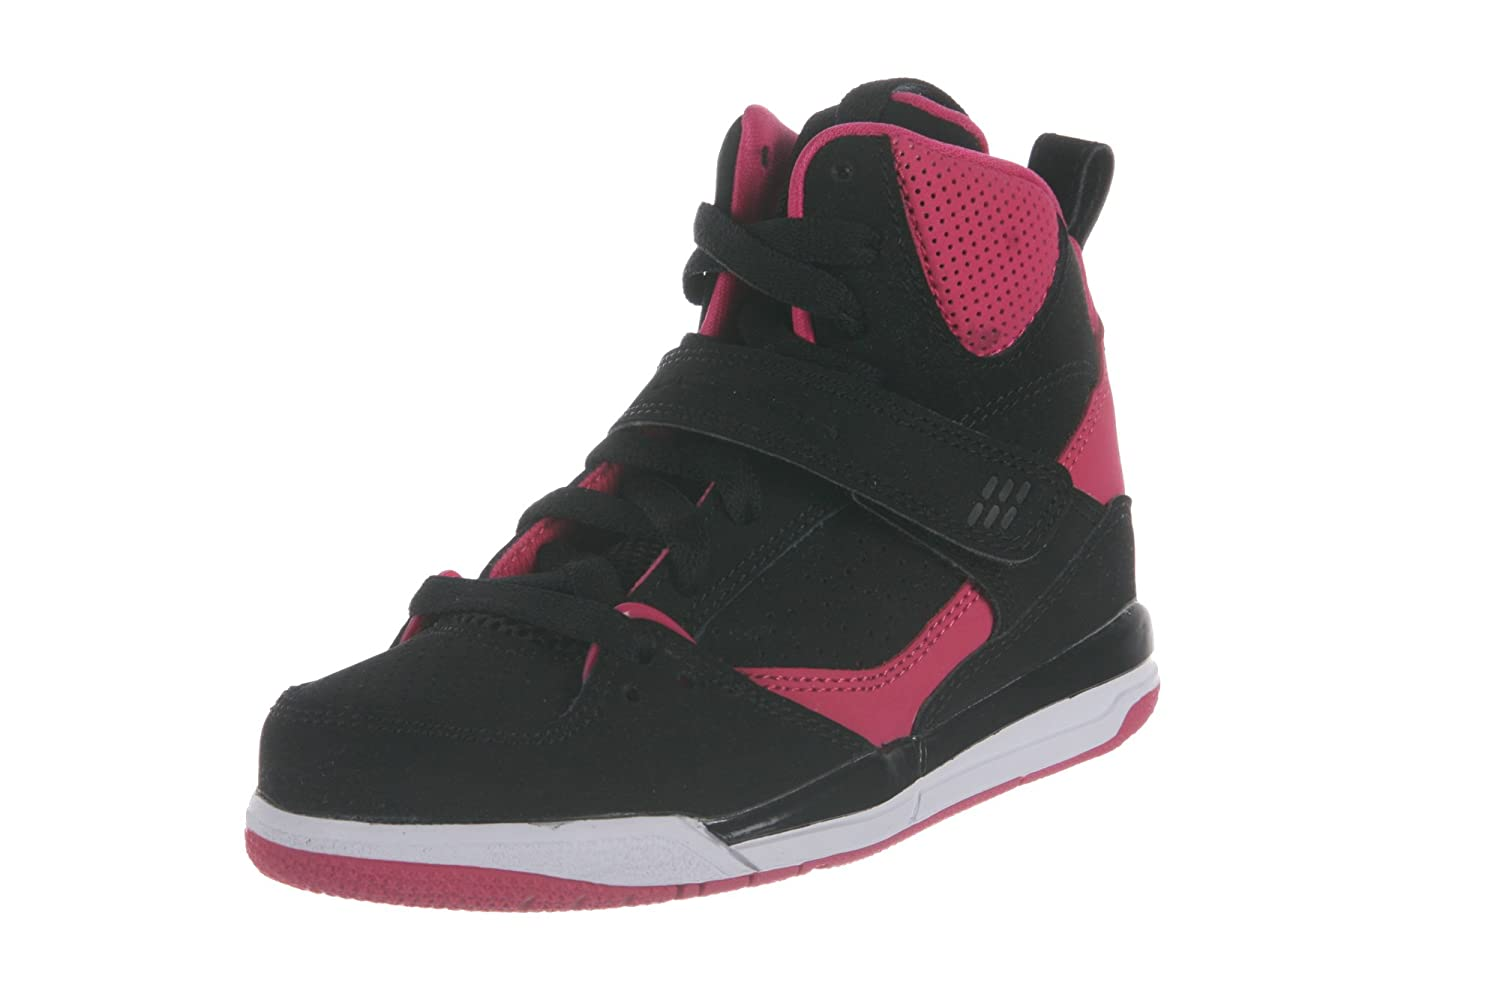 purchase cheap 28cef 65f61 Amazon.com   JORDAN FLIGHT 45 HIGH GP Girls sneakers 524863-008   Shoes